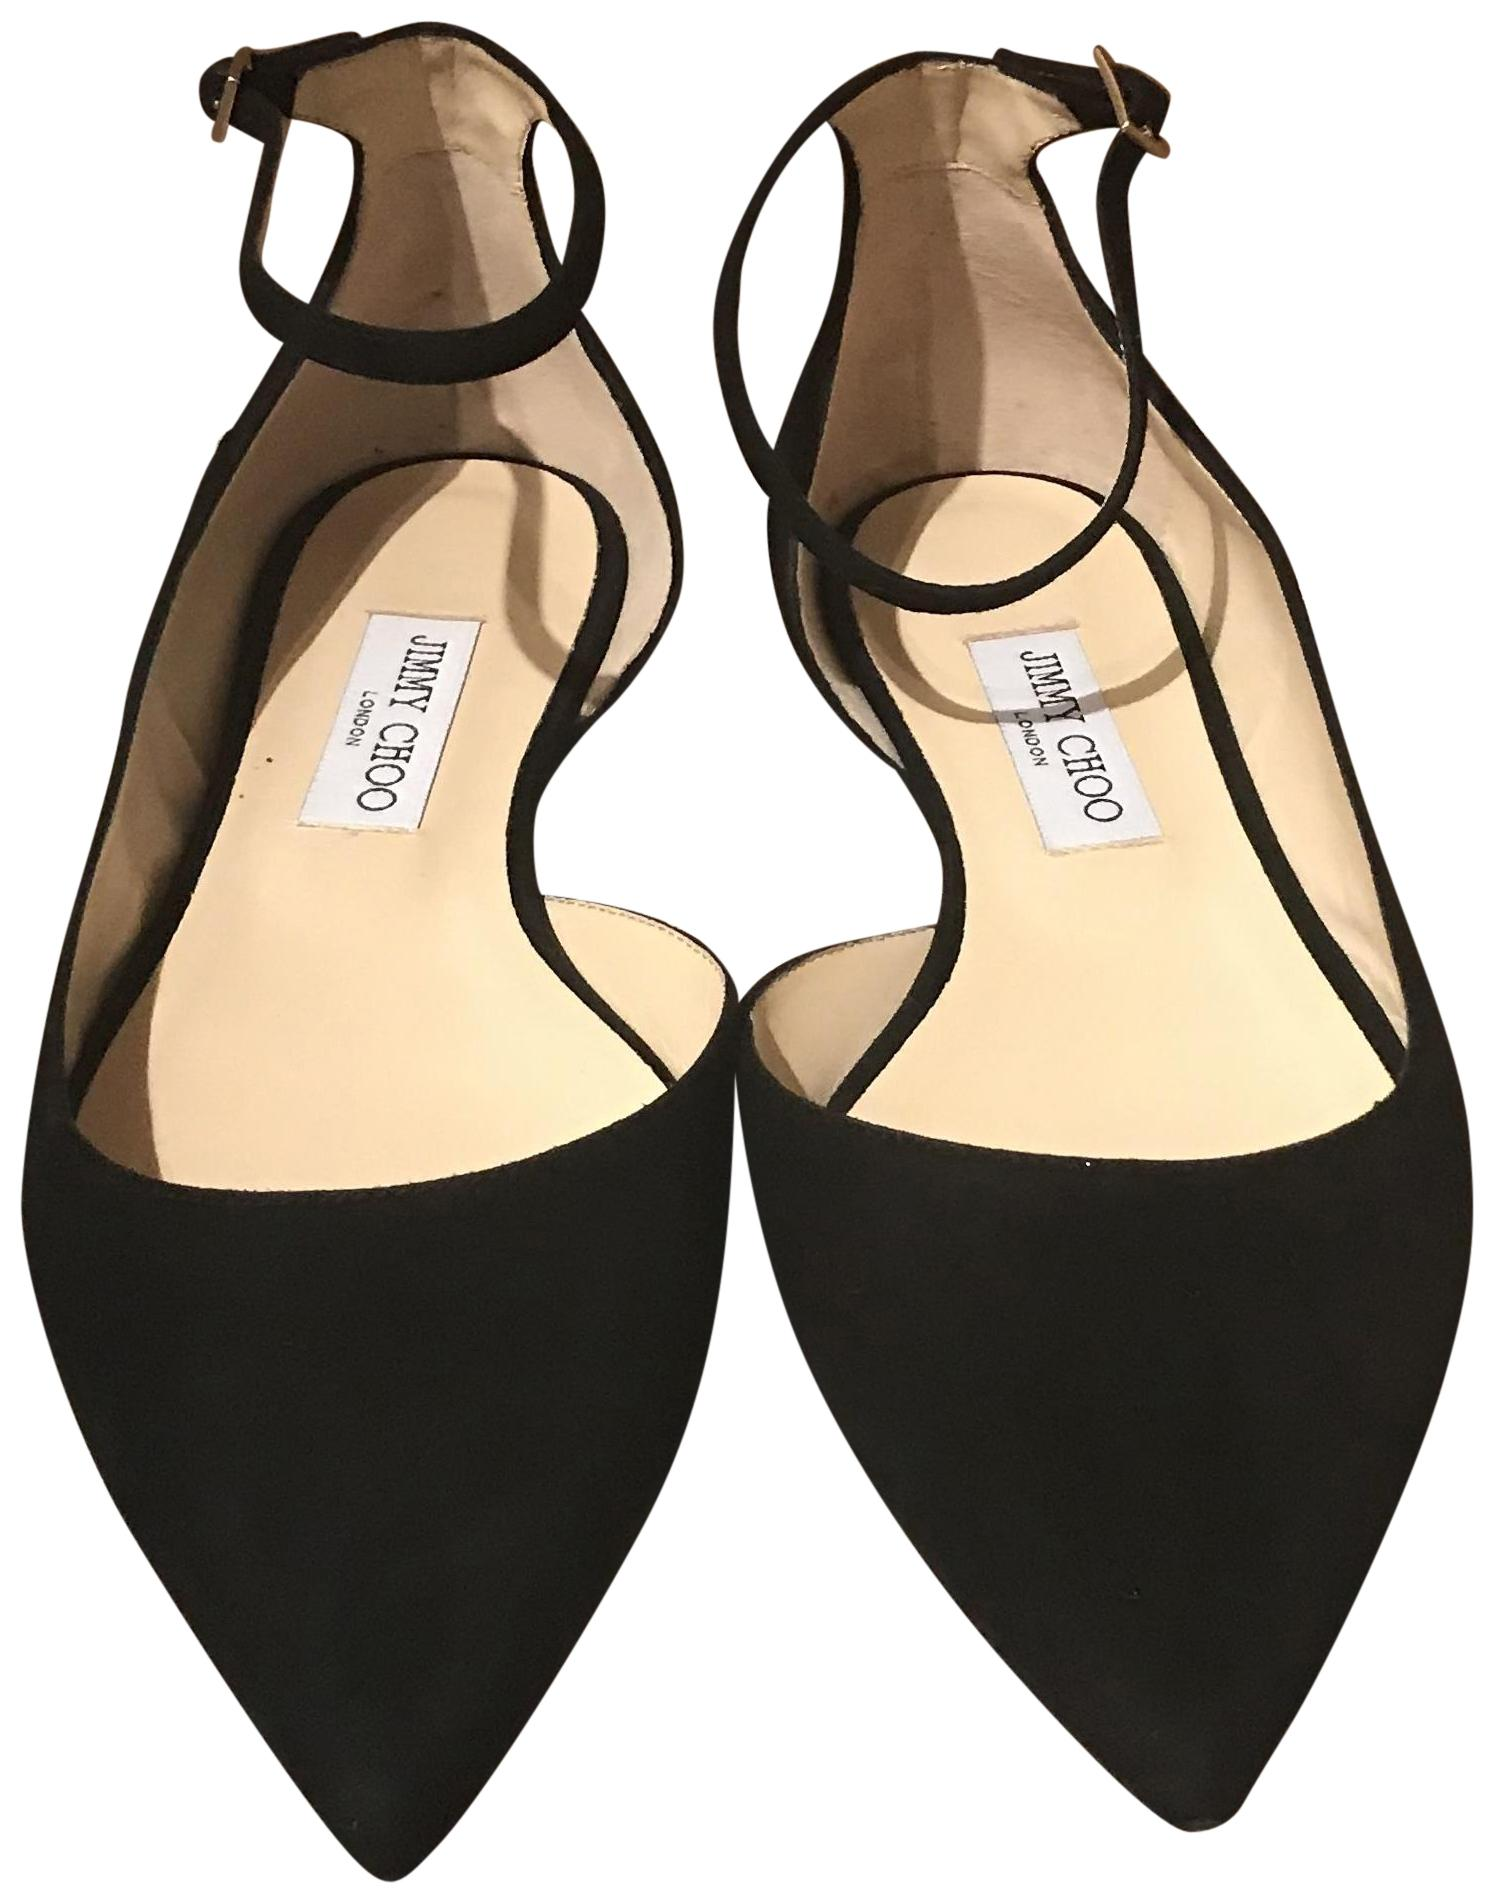 Jimmy US Choo Black Lucy Flats Size EU 40.5 (Approx. US Jimmy 10.5) Regular (M, B) f3f122